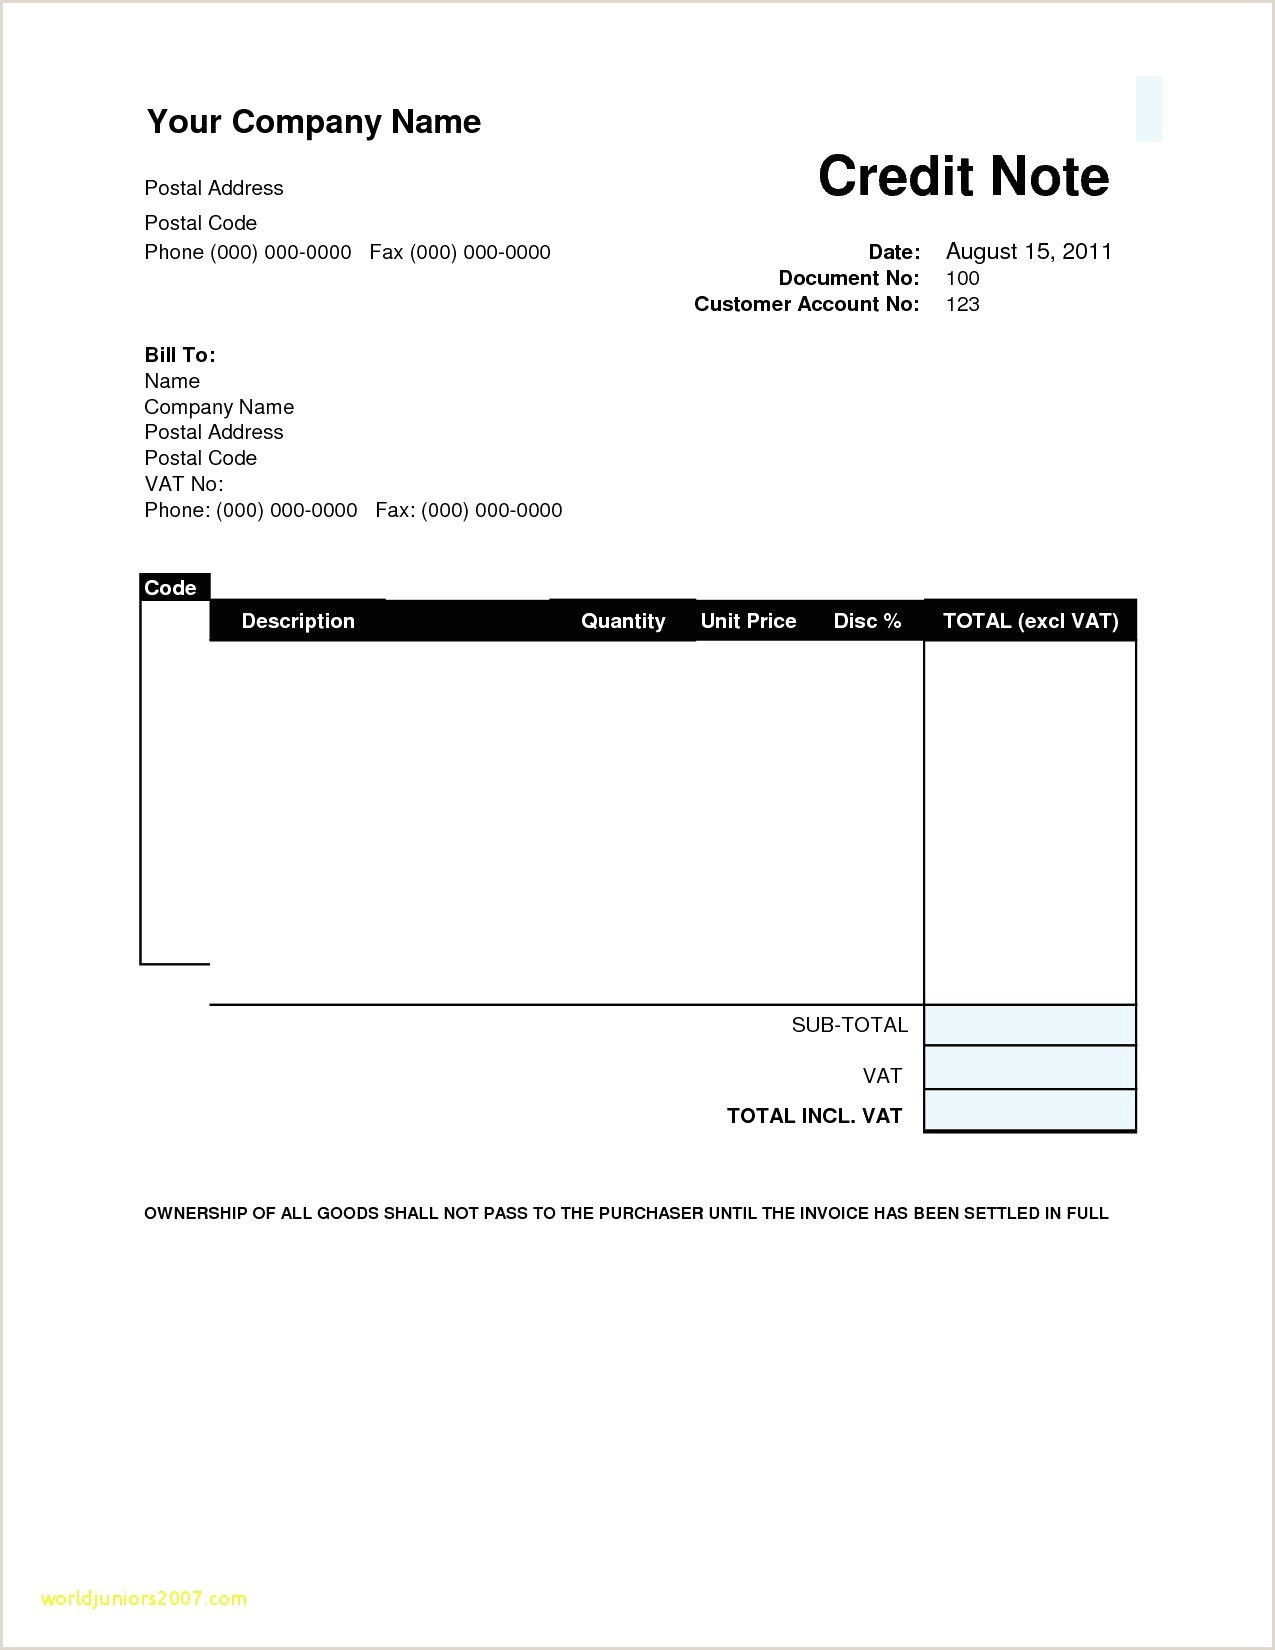 Bissnes Cards Police Department Business Card Templates